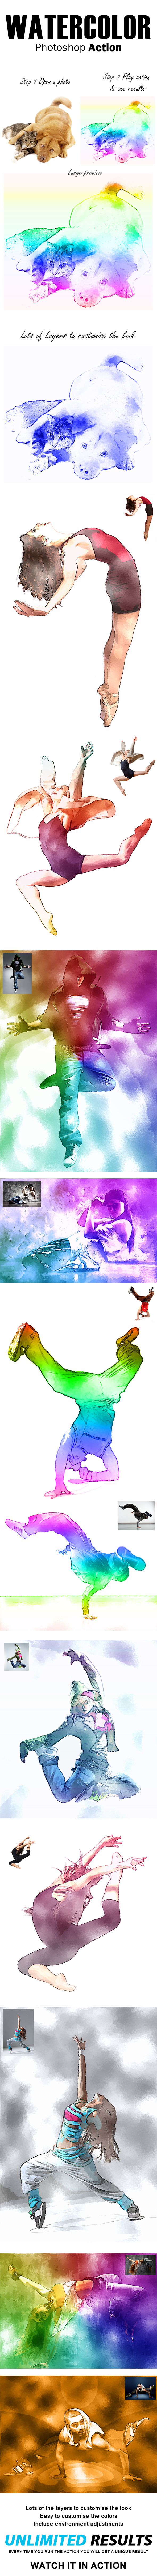 GraphicRiver Watercolor Photoshop Action 9961482